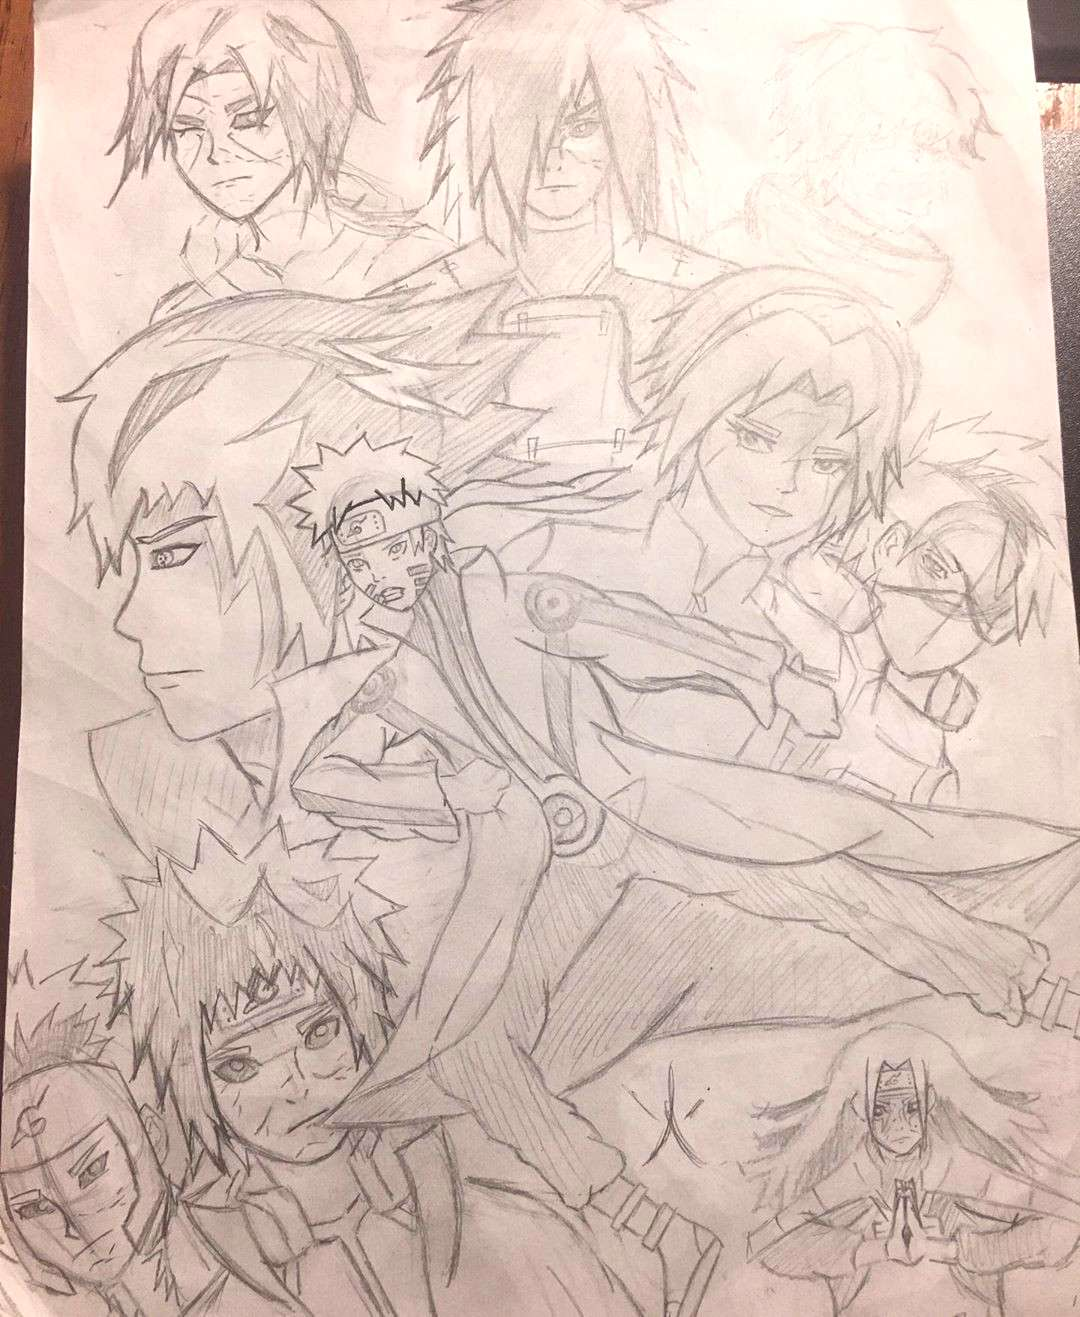 Happy New Years Children! This is the second WIP if my Naruto Drawing :D